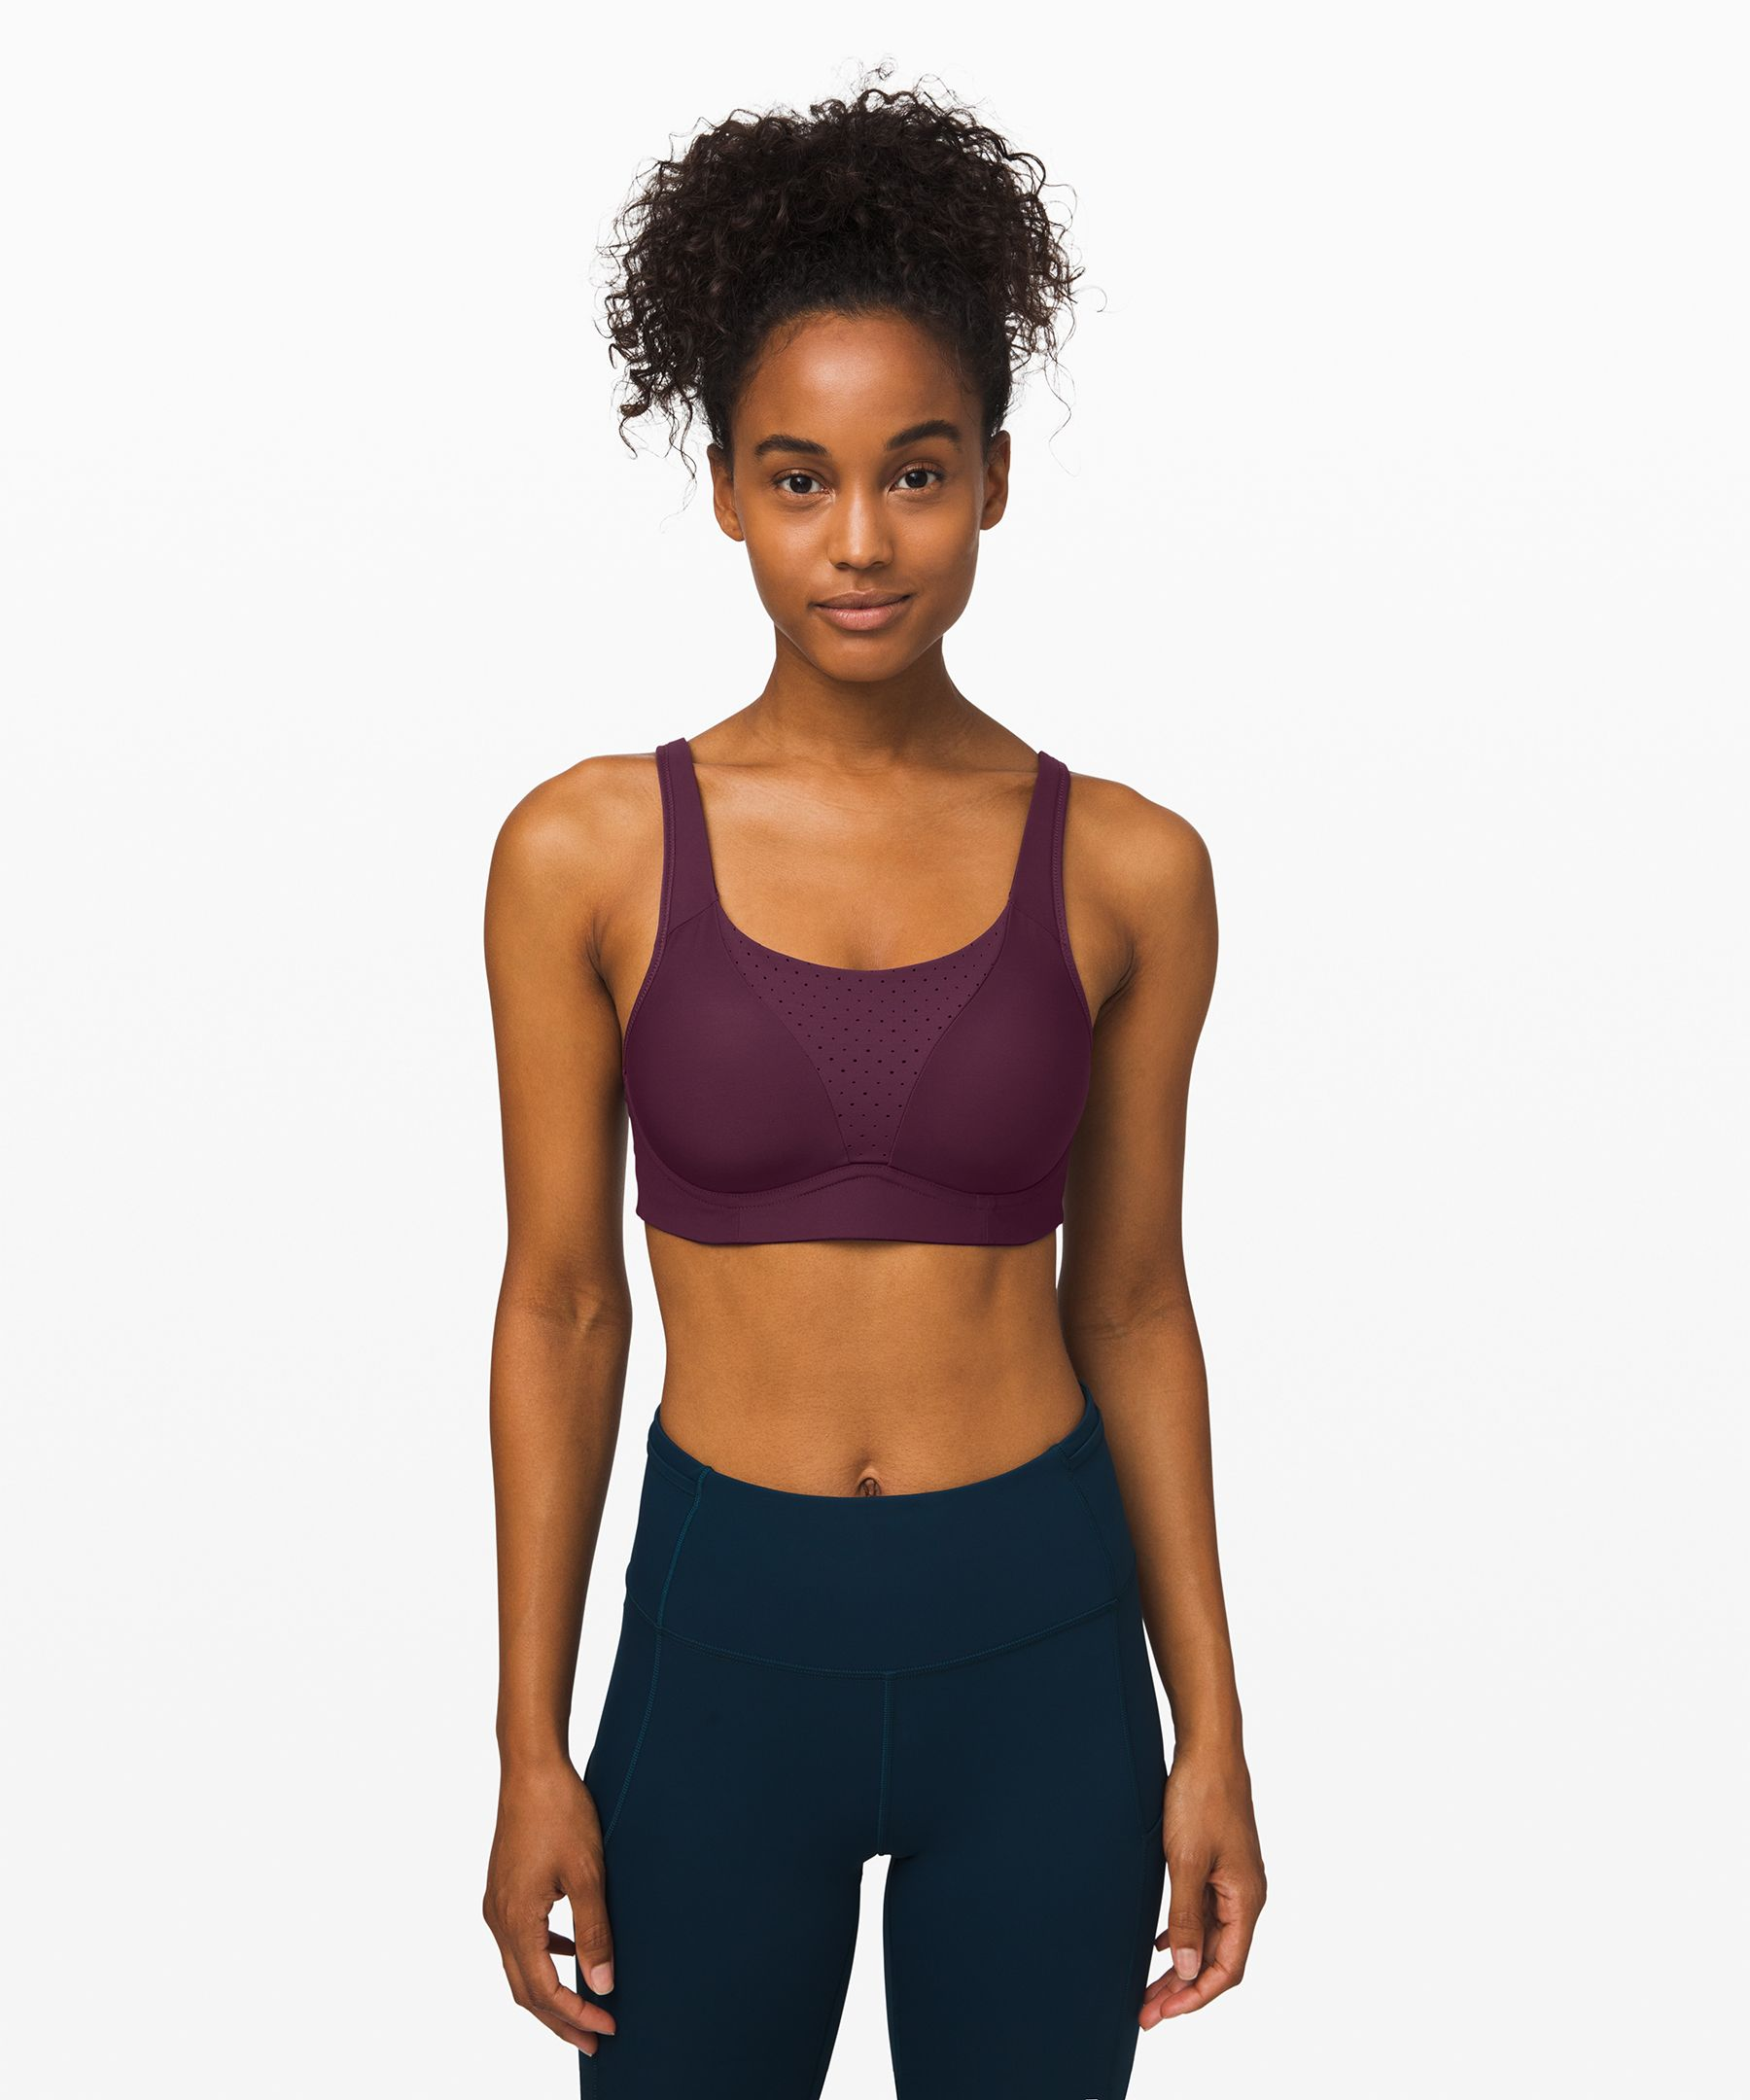 Going for a run? Keep your  mind on your stride in this  sleek bra that gives you  support, separation and  coverage, with perforated  panelling for airflow.